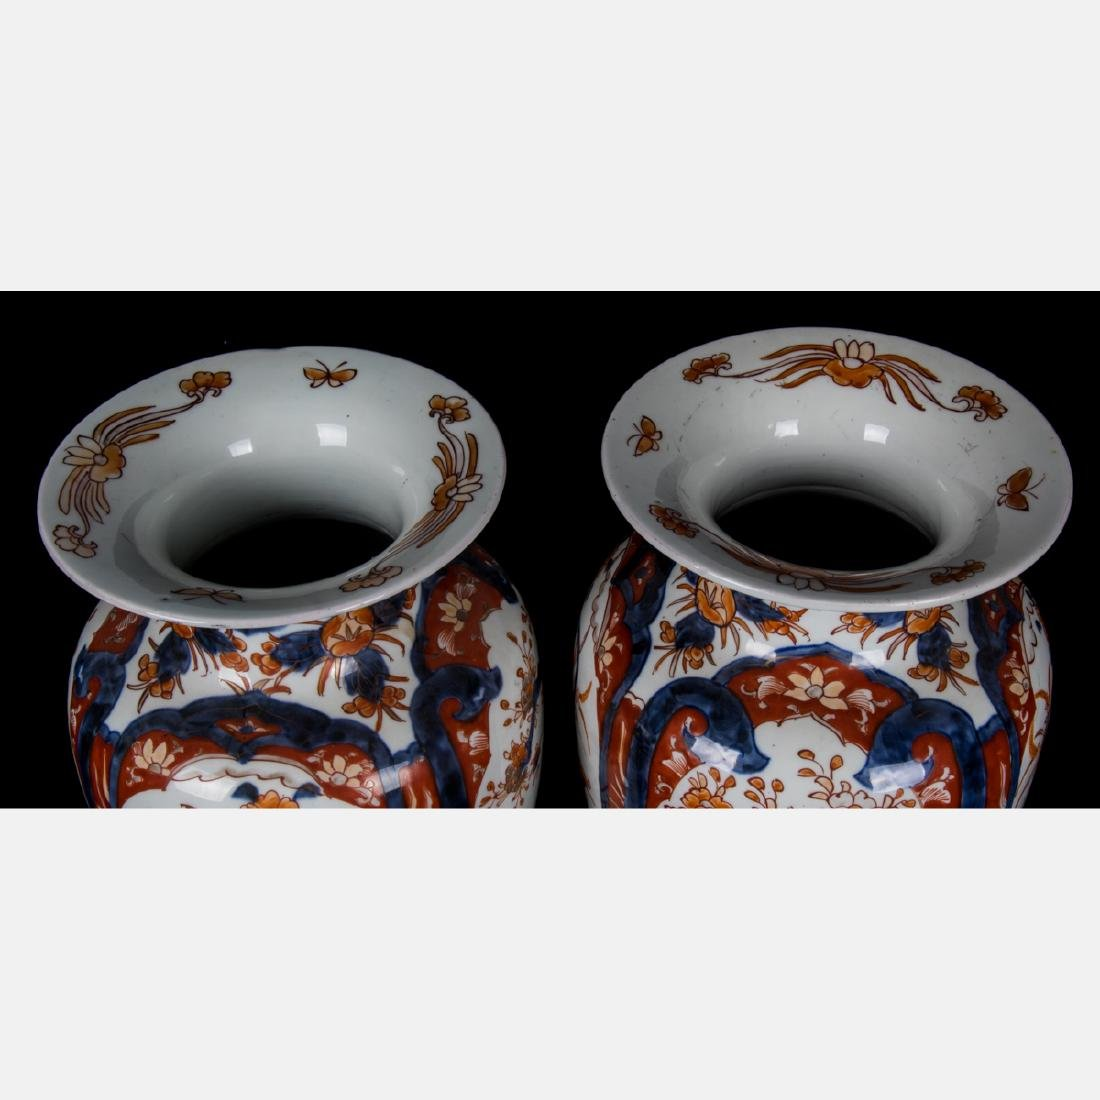 A Pair of Japanese Imari Porcelain Vases, 20th Century. - 2